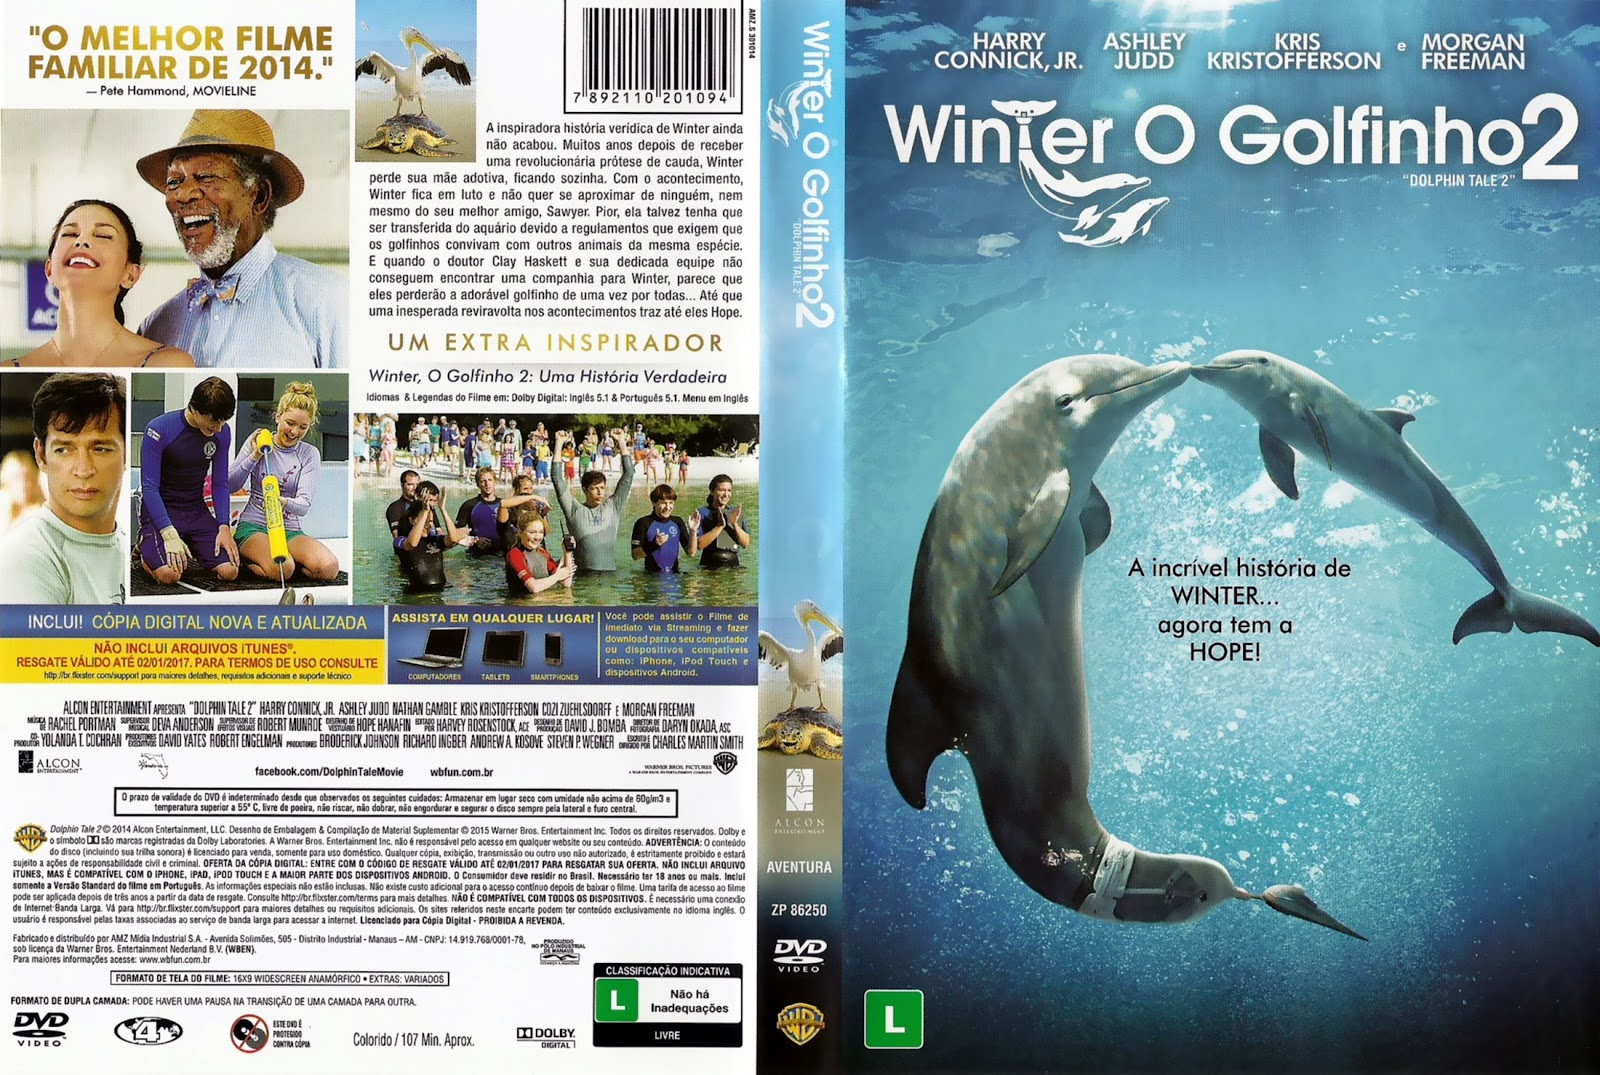 Capa DVD Winter O Golfinho 2